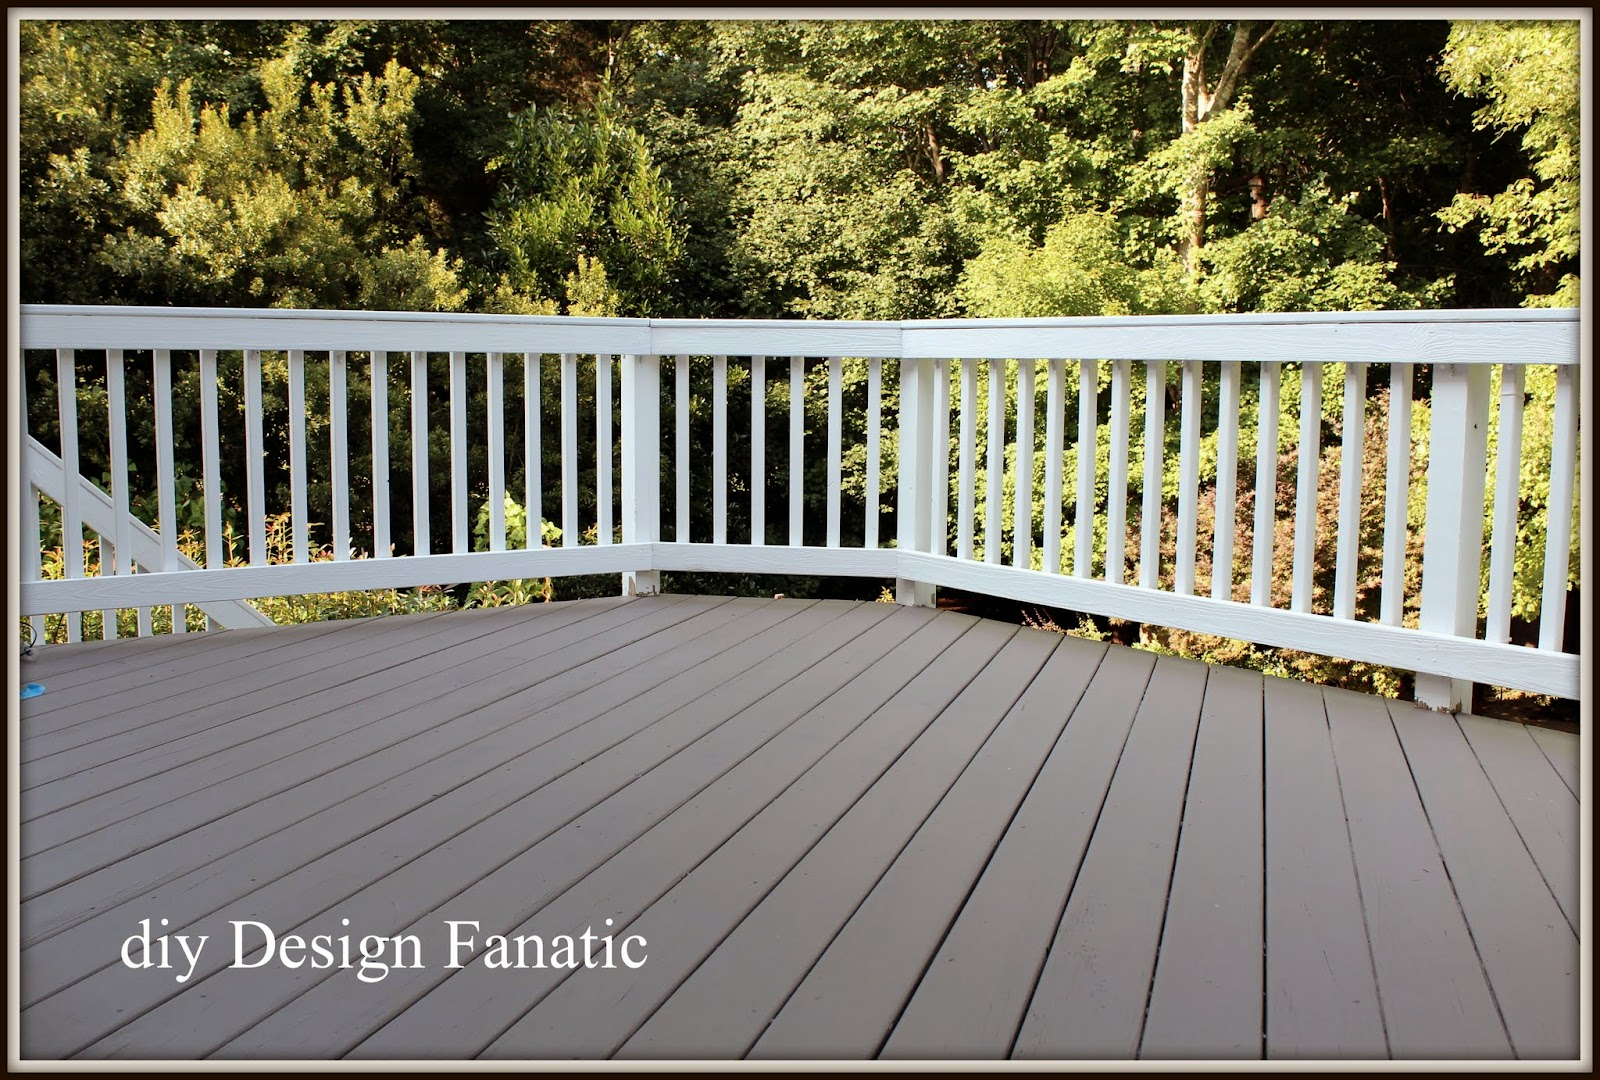 Diy design fanatic refinishing our deck for Deck paint colors home depot